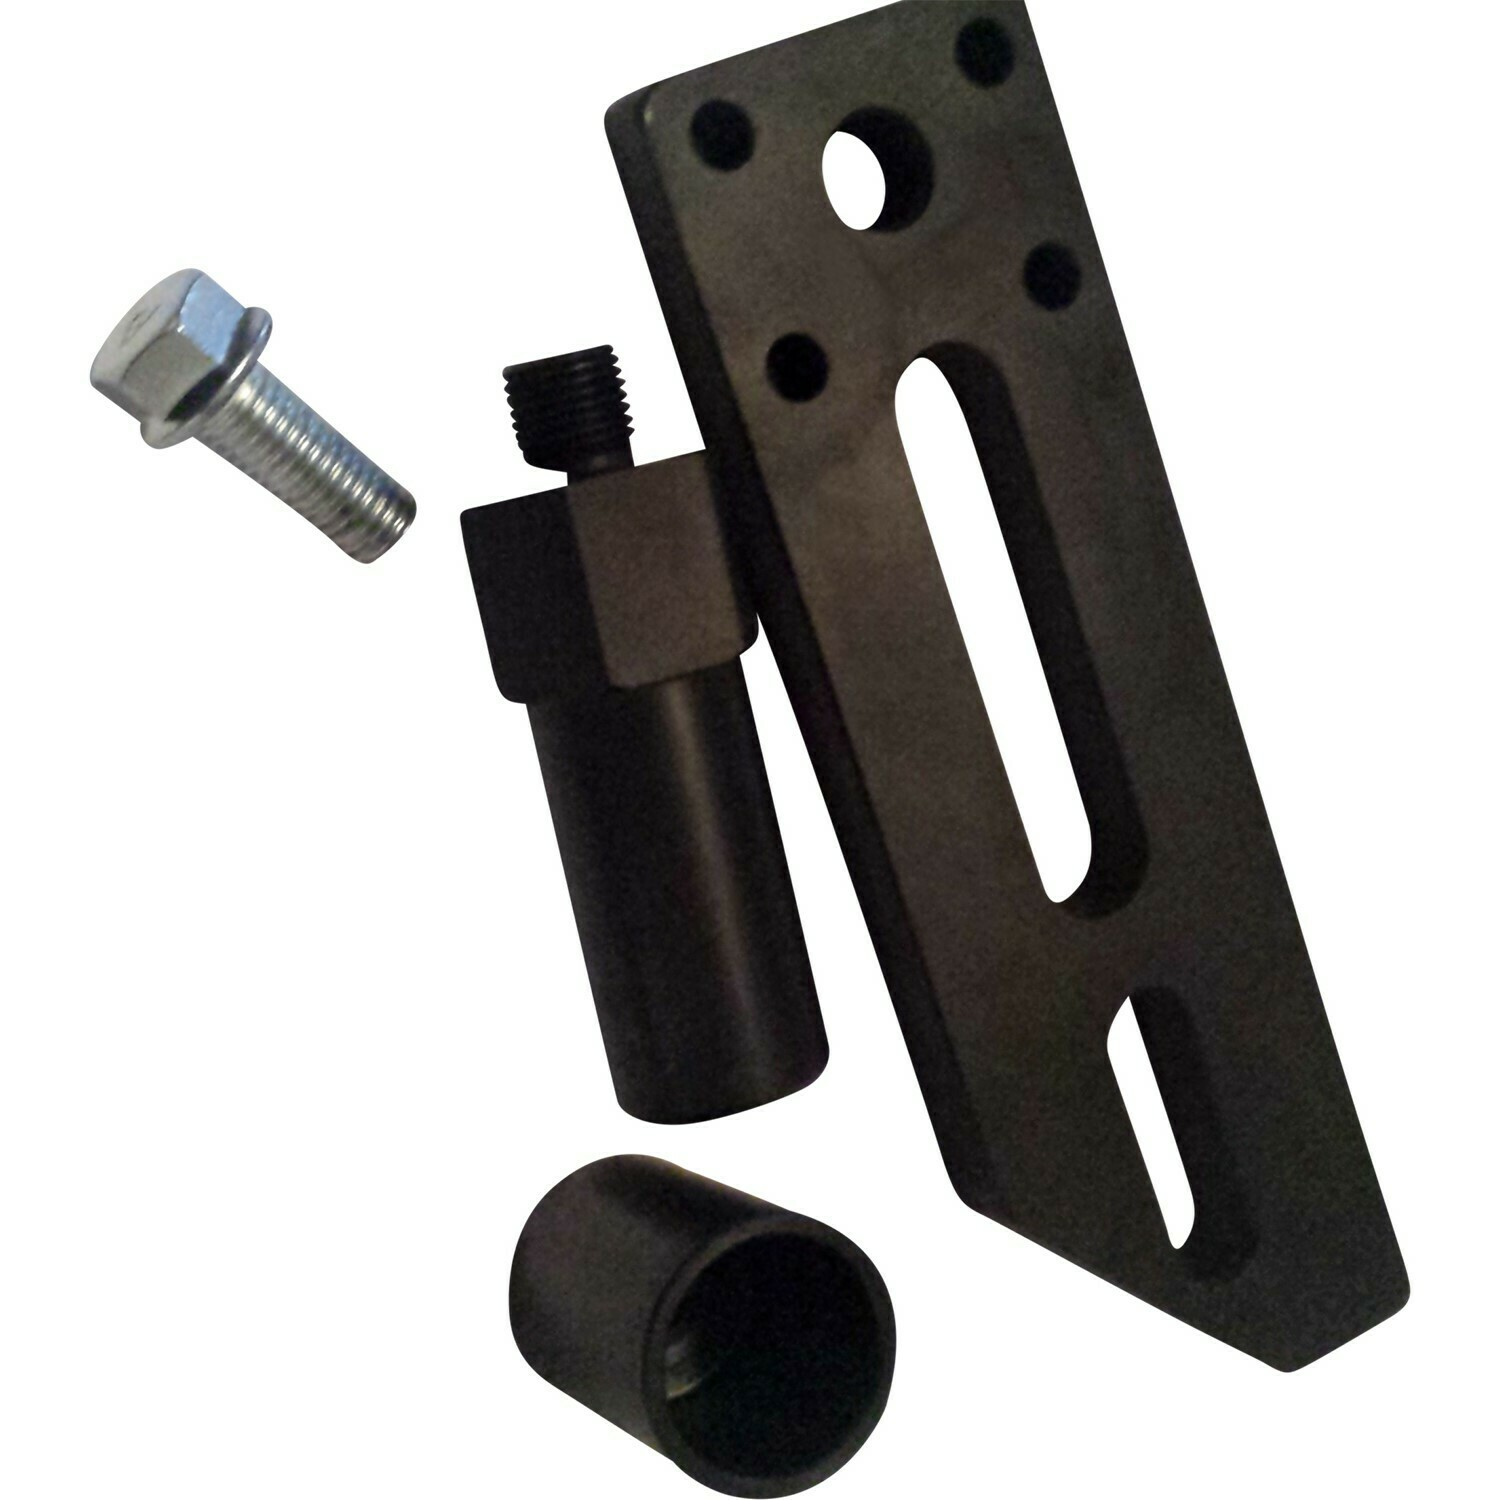 2013 - 2017 Kawasaki Ninja 300R Pin Kit for Black Paddock Style Side Lift Stand